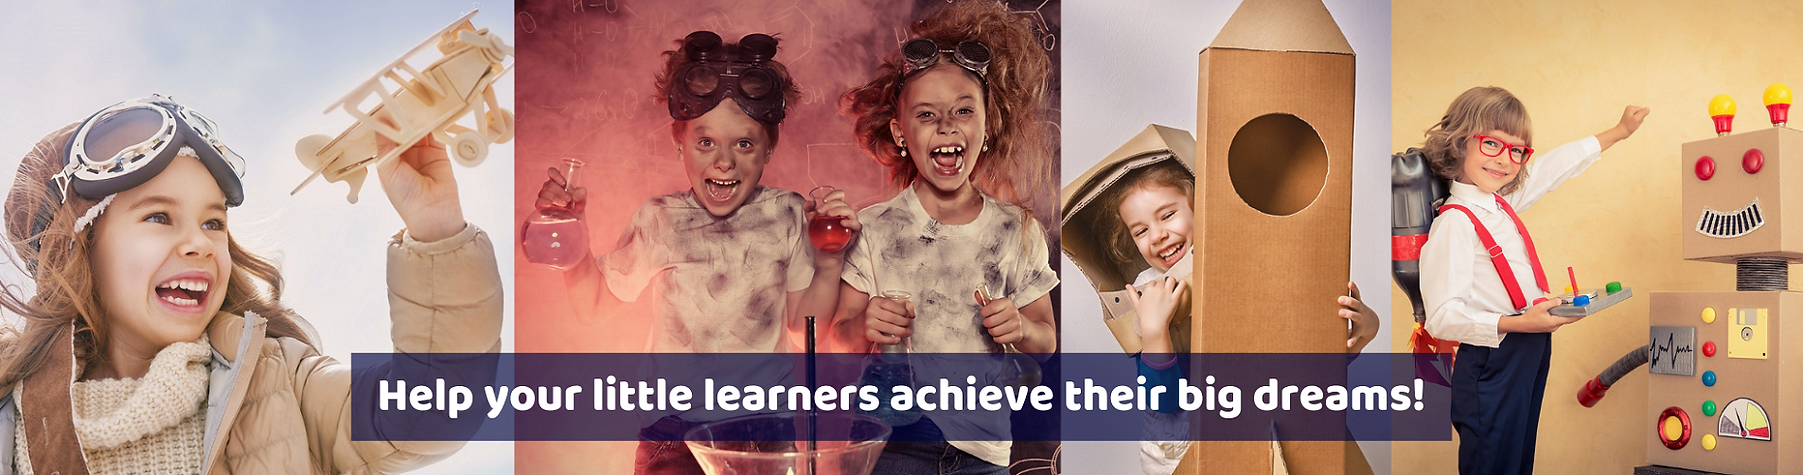 Help your little learners achieve their